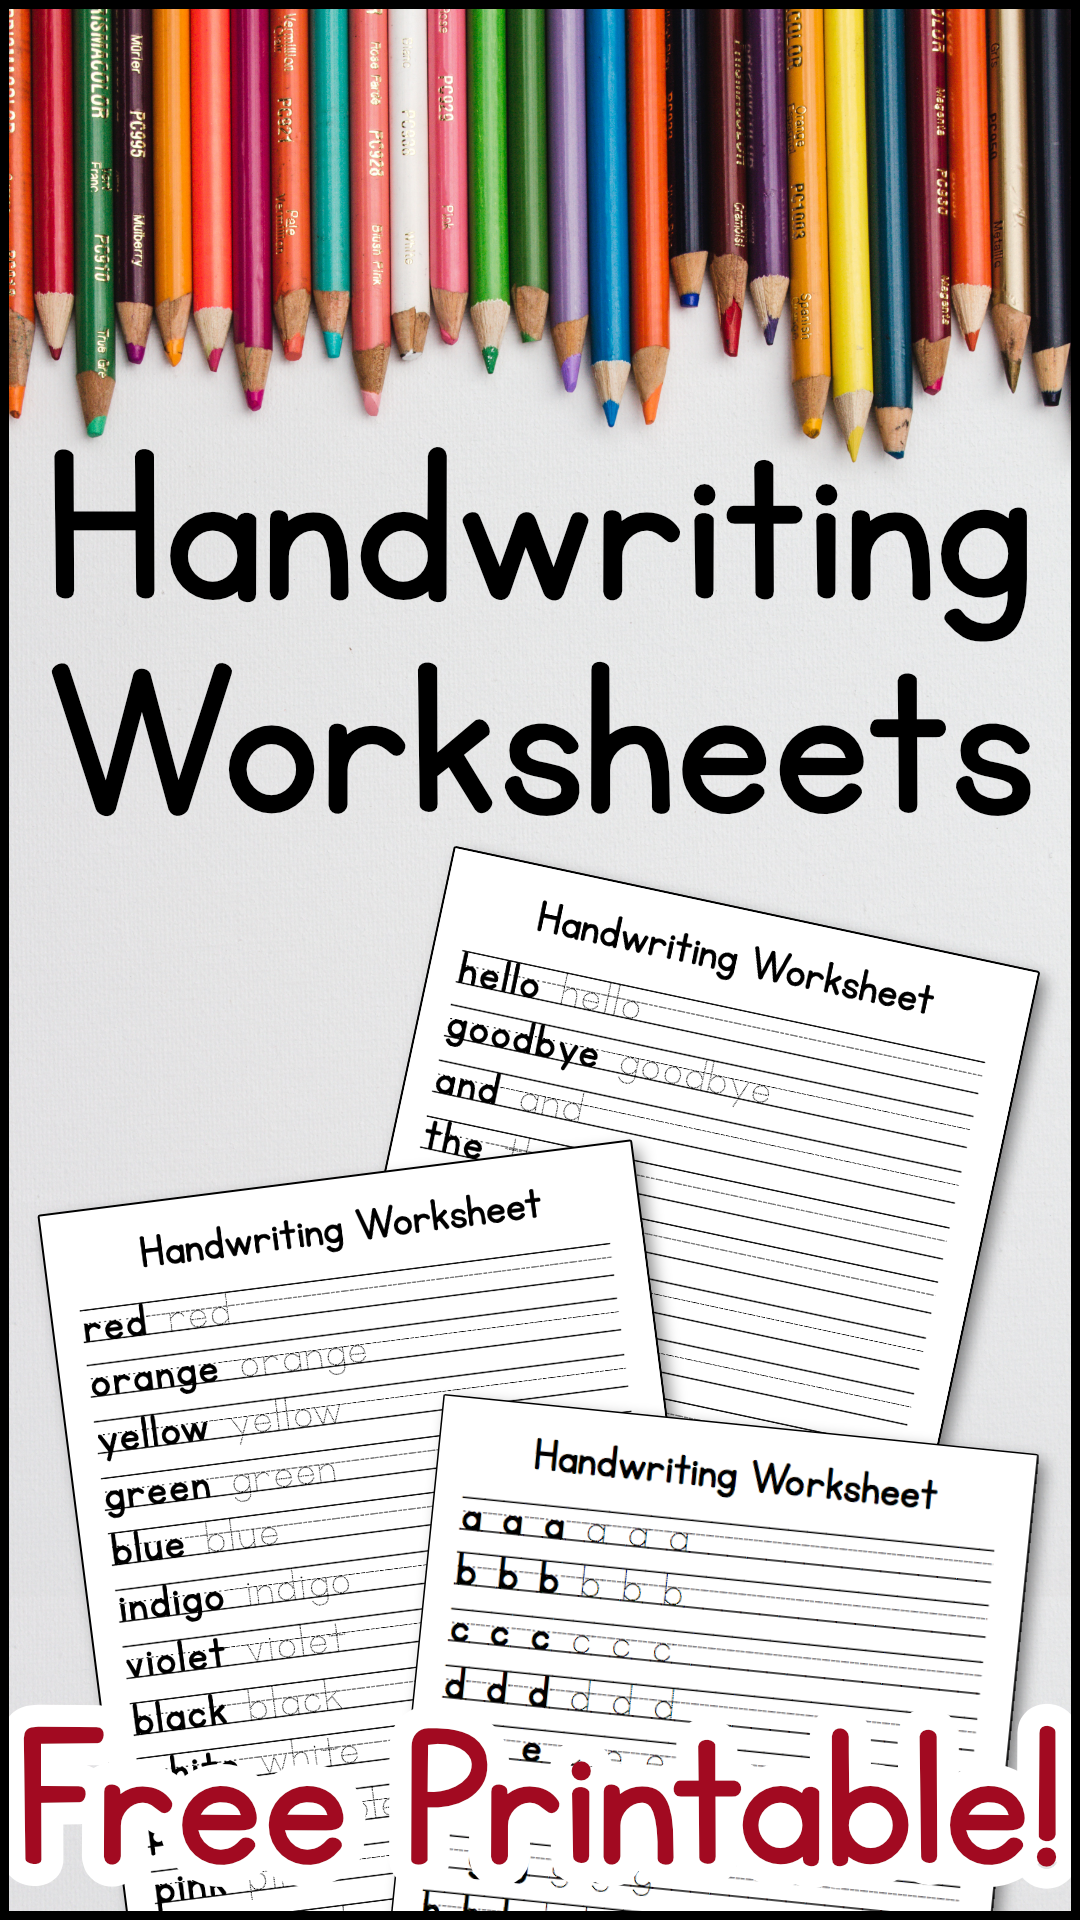 Worksheets Handwriting Worksheets Free Printables handwriting worksheets free printable for the kids pinterest a set of 10 to help your child improve their includes letters